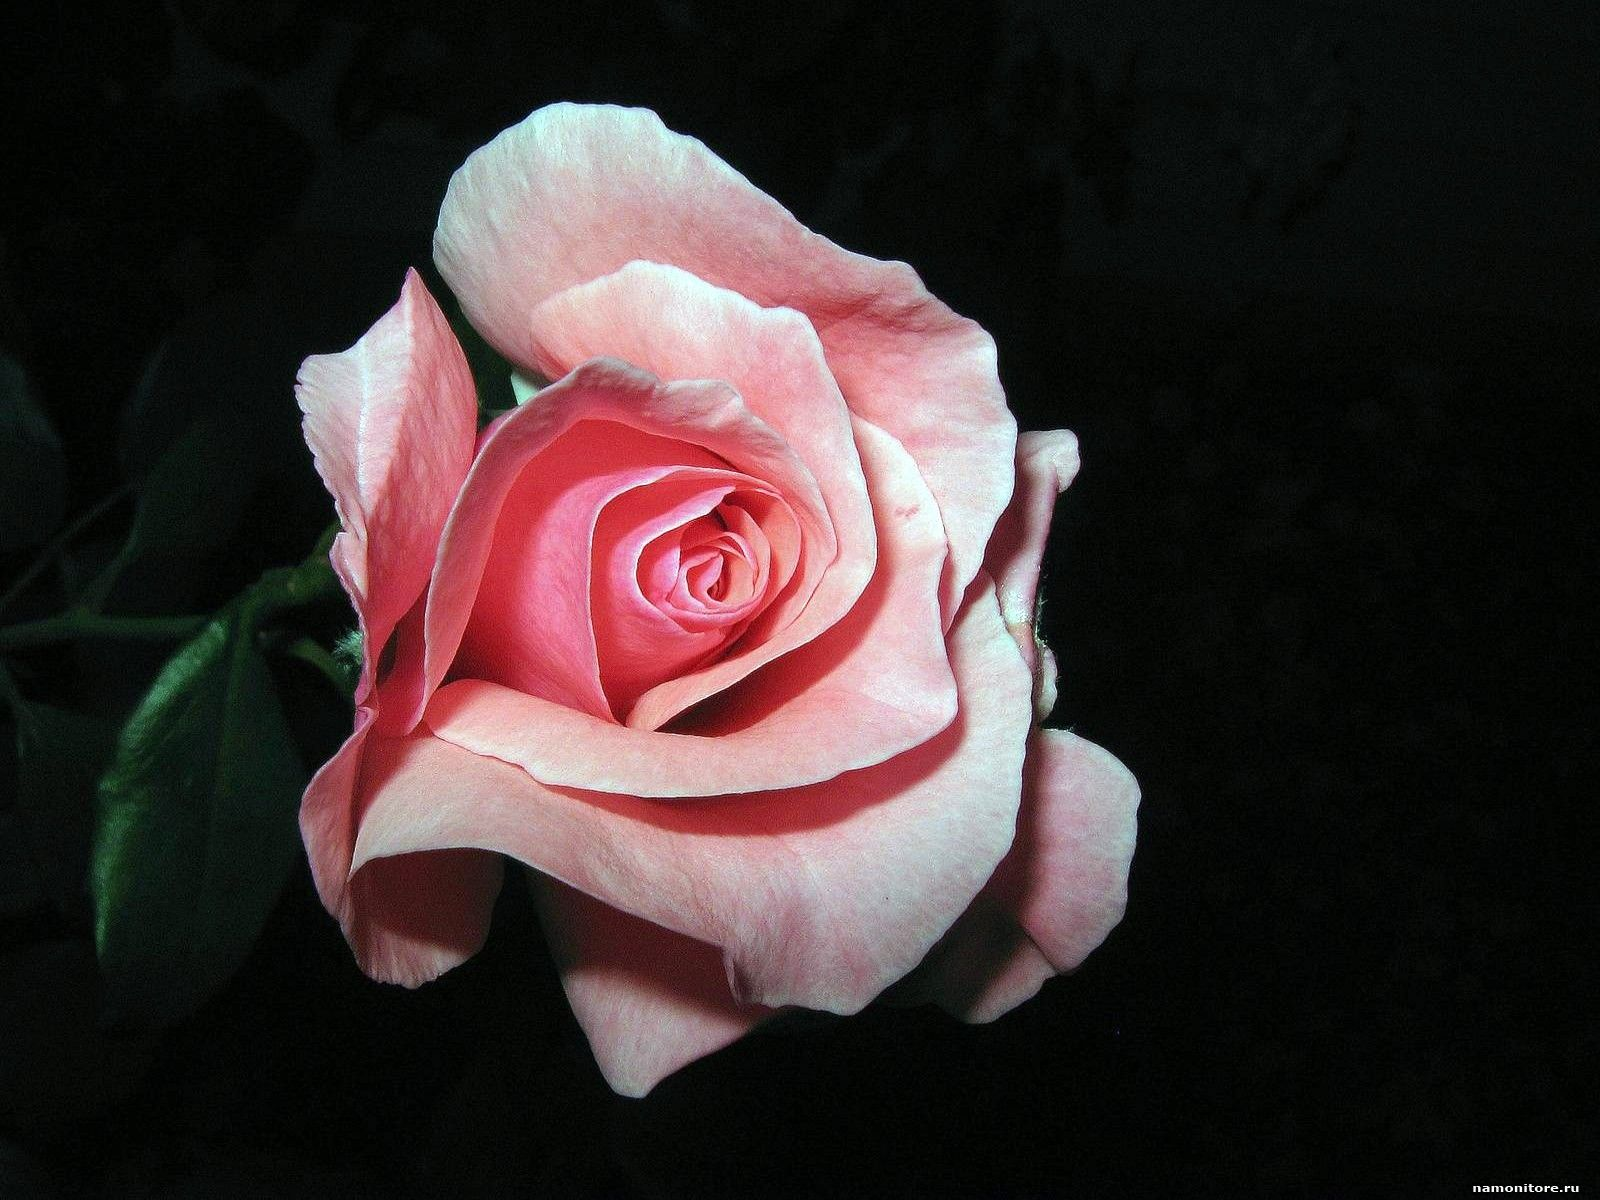 The Pink Rose On A Black Background Black Flowers Pink Roses 1600x1200 Wallpapers Photografies Photo Wallpapers Best Quality Rozy Cvety Raboty